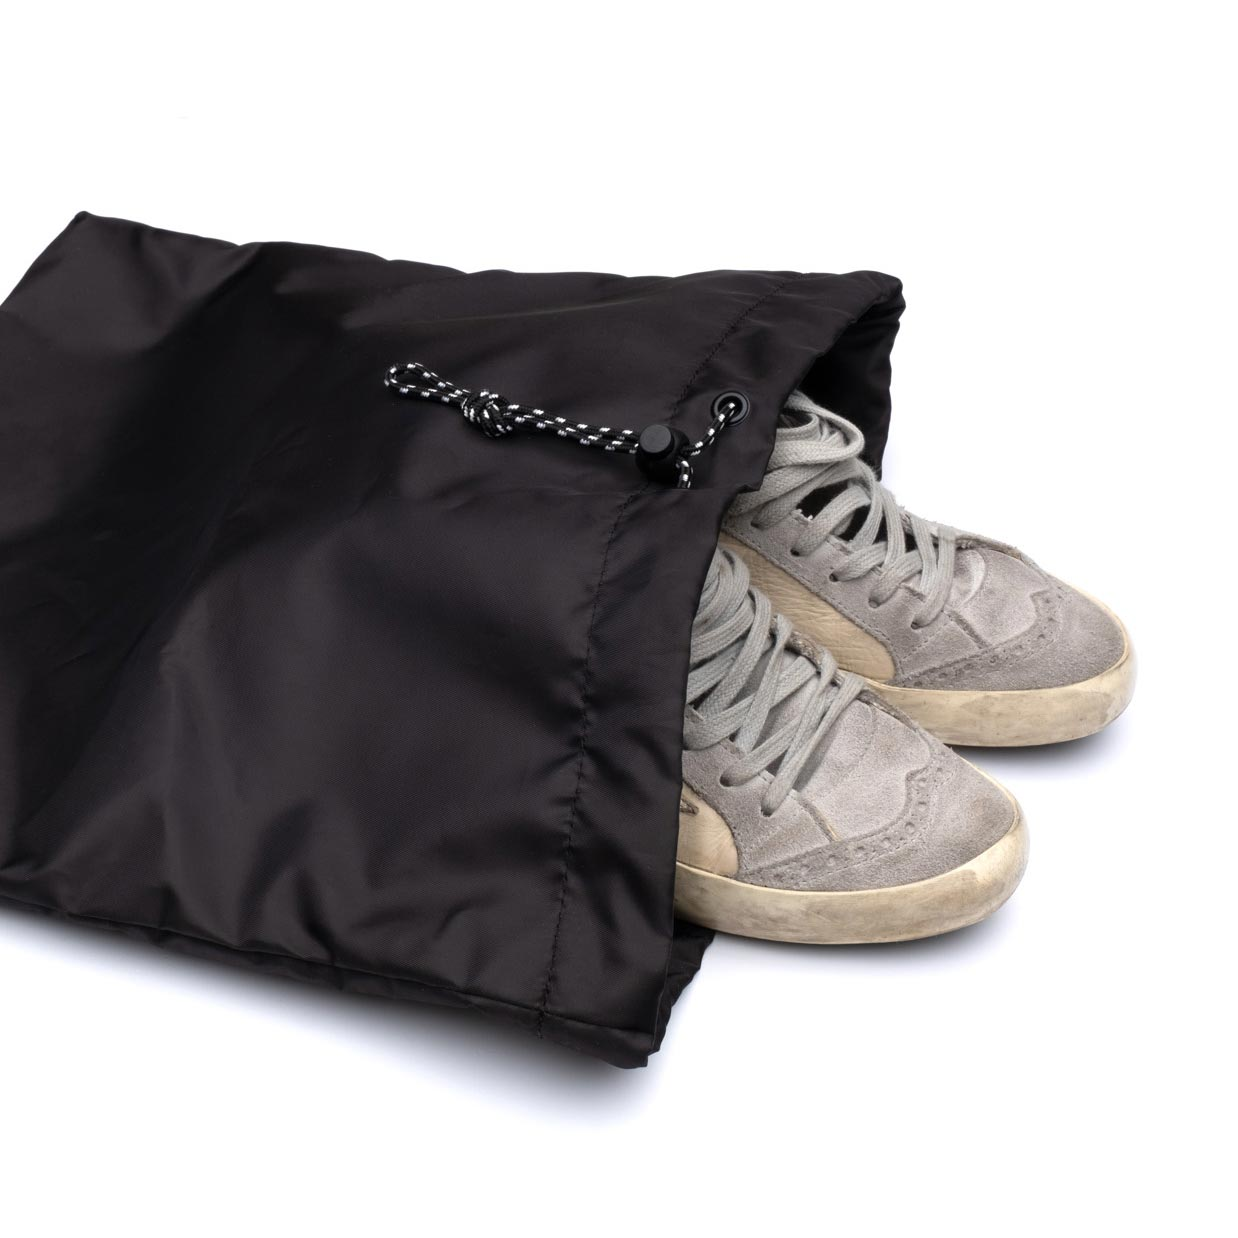 Larger Washable Shoe/Laundry Pouch